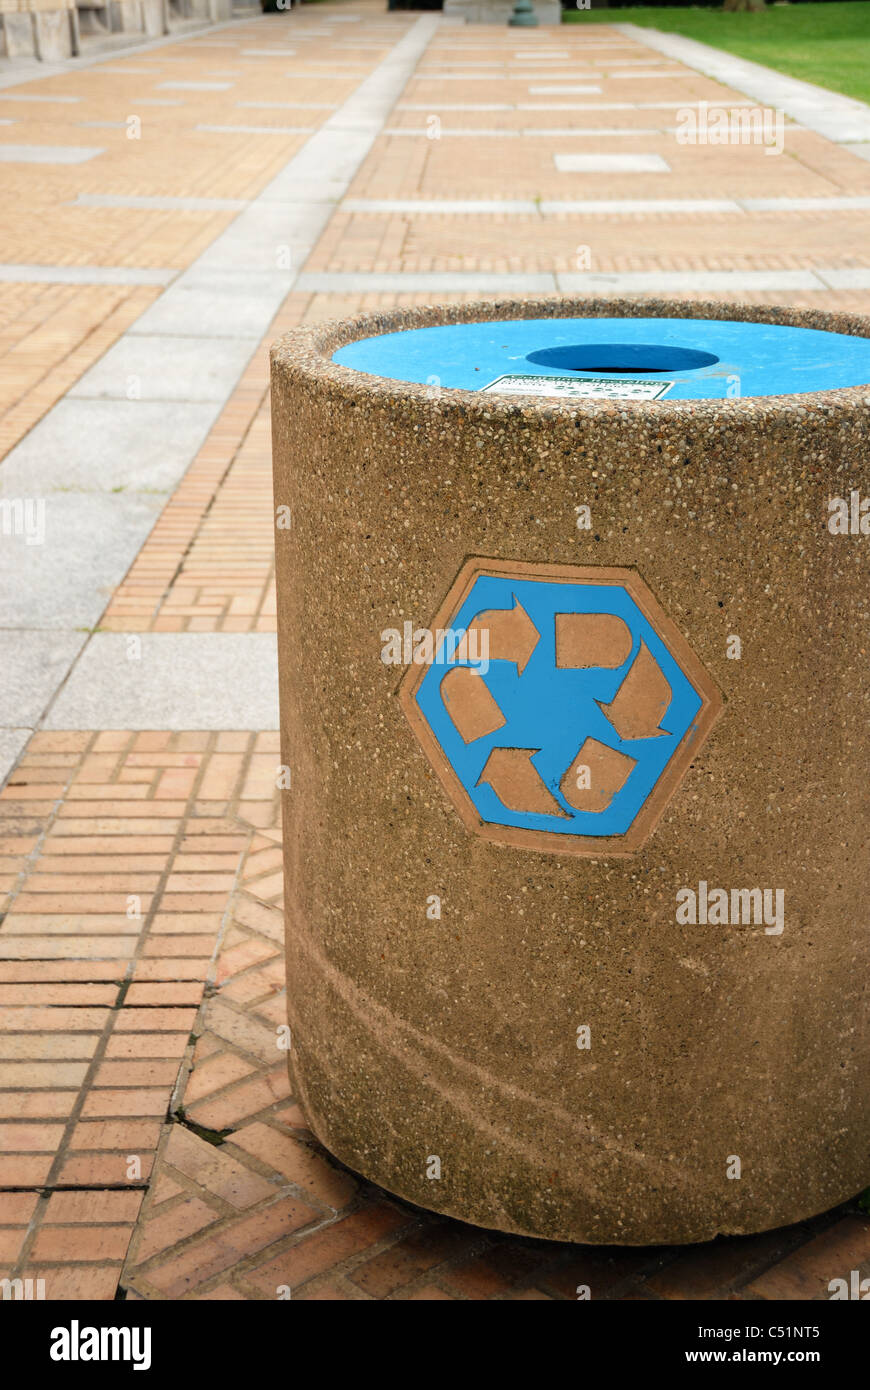 The universal recycling symbol  is an internationally recognized symbol used to designate recyclable materials. - Stock Image